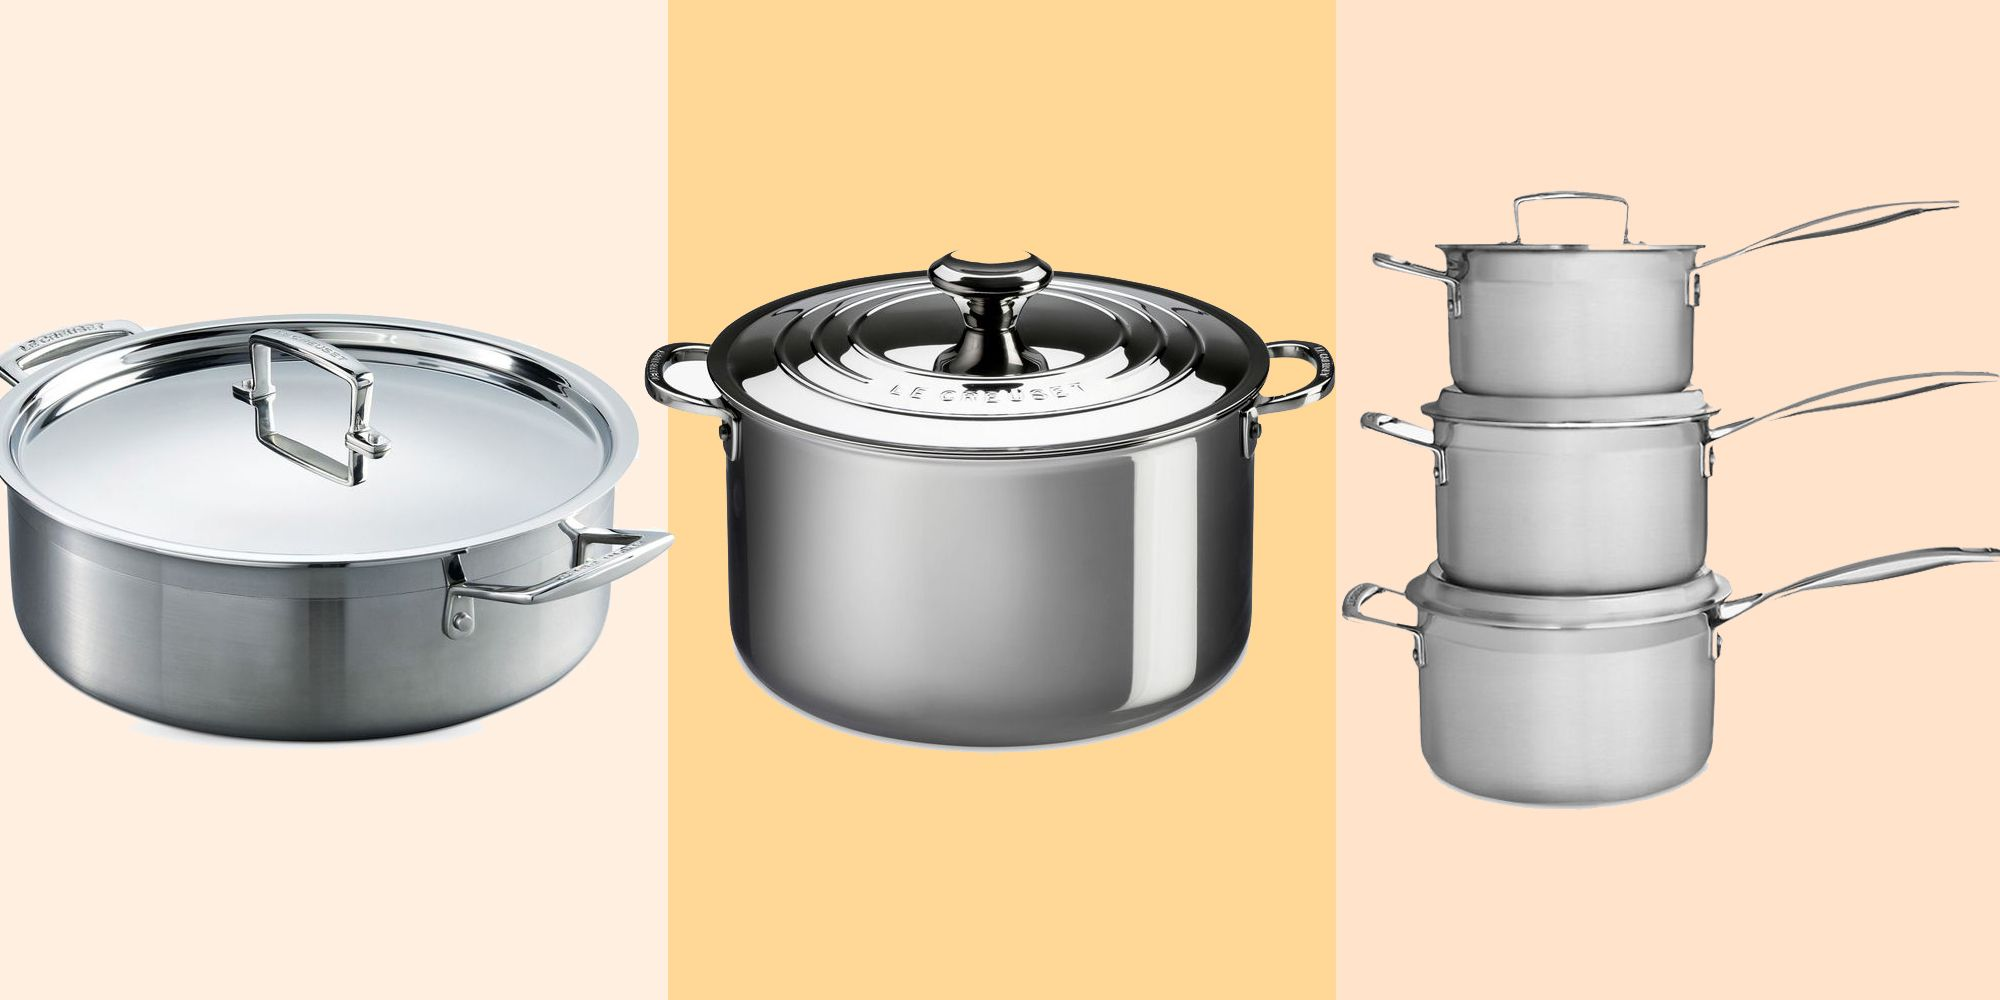 Le Creuset's stunning stainless steel range will transform your kitchen